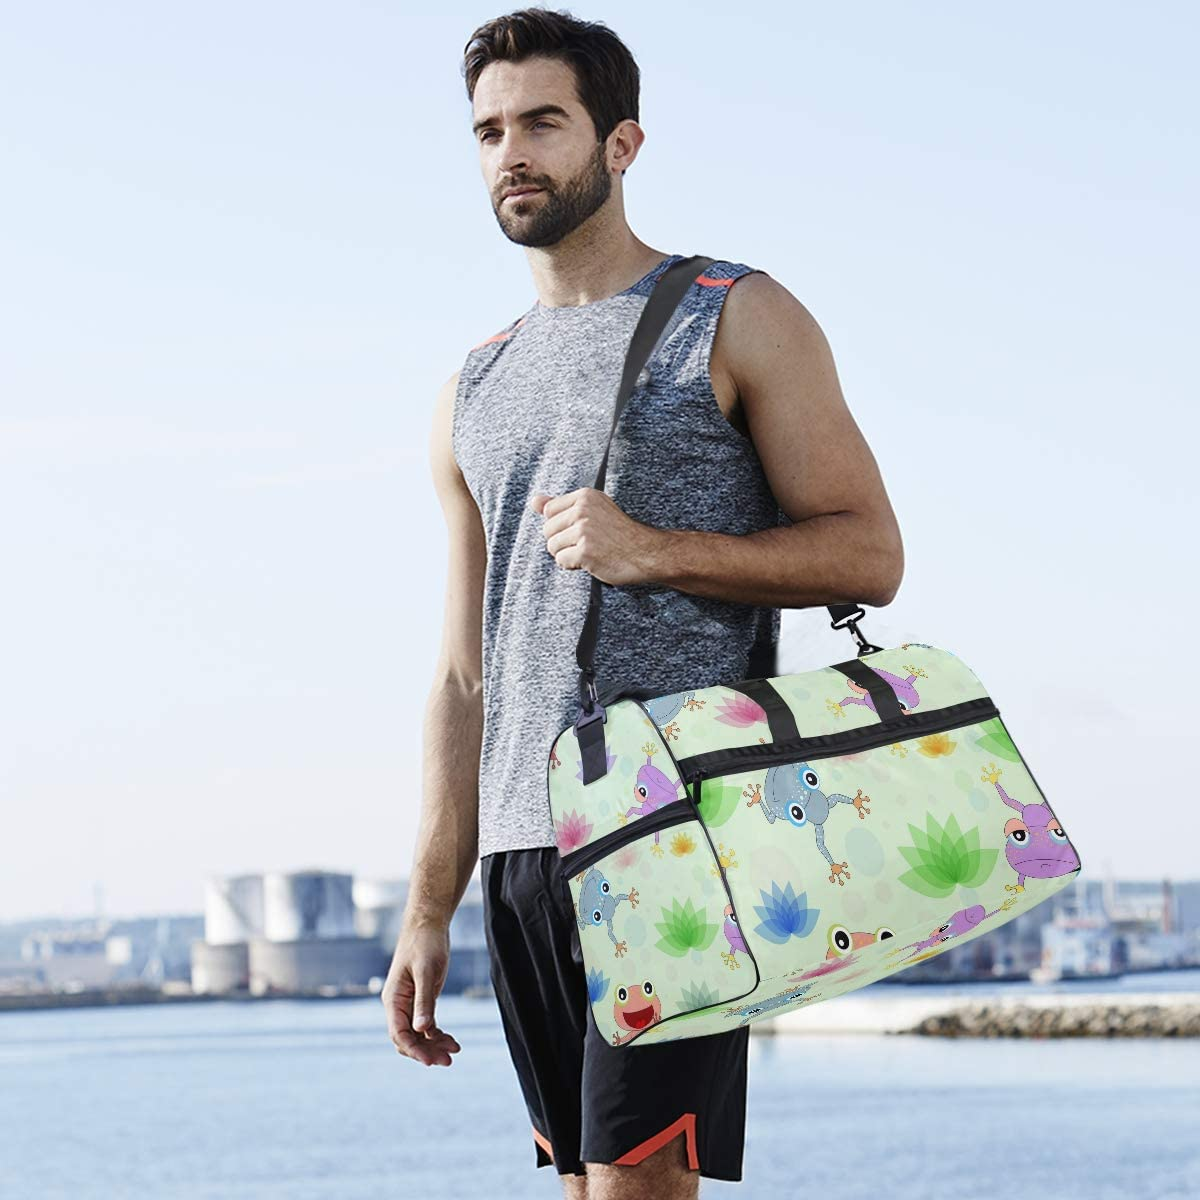 FAJRO Gym Bag Travel Duffel Express Weekender Bag Colorful Frogs Pattern Carry On Luggage with Shoe Pouch